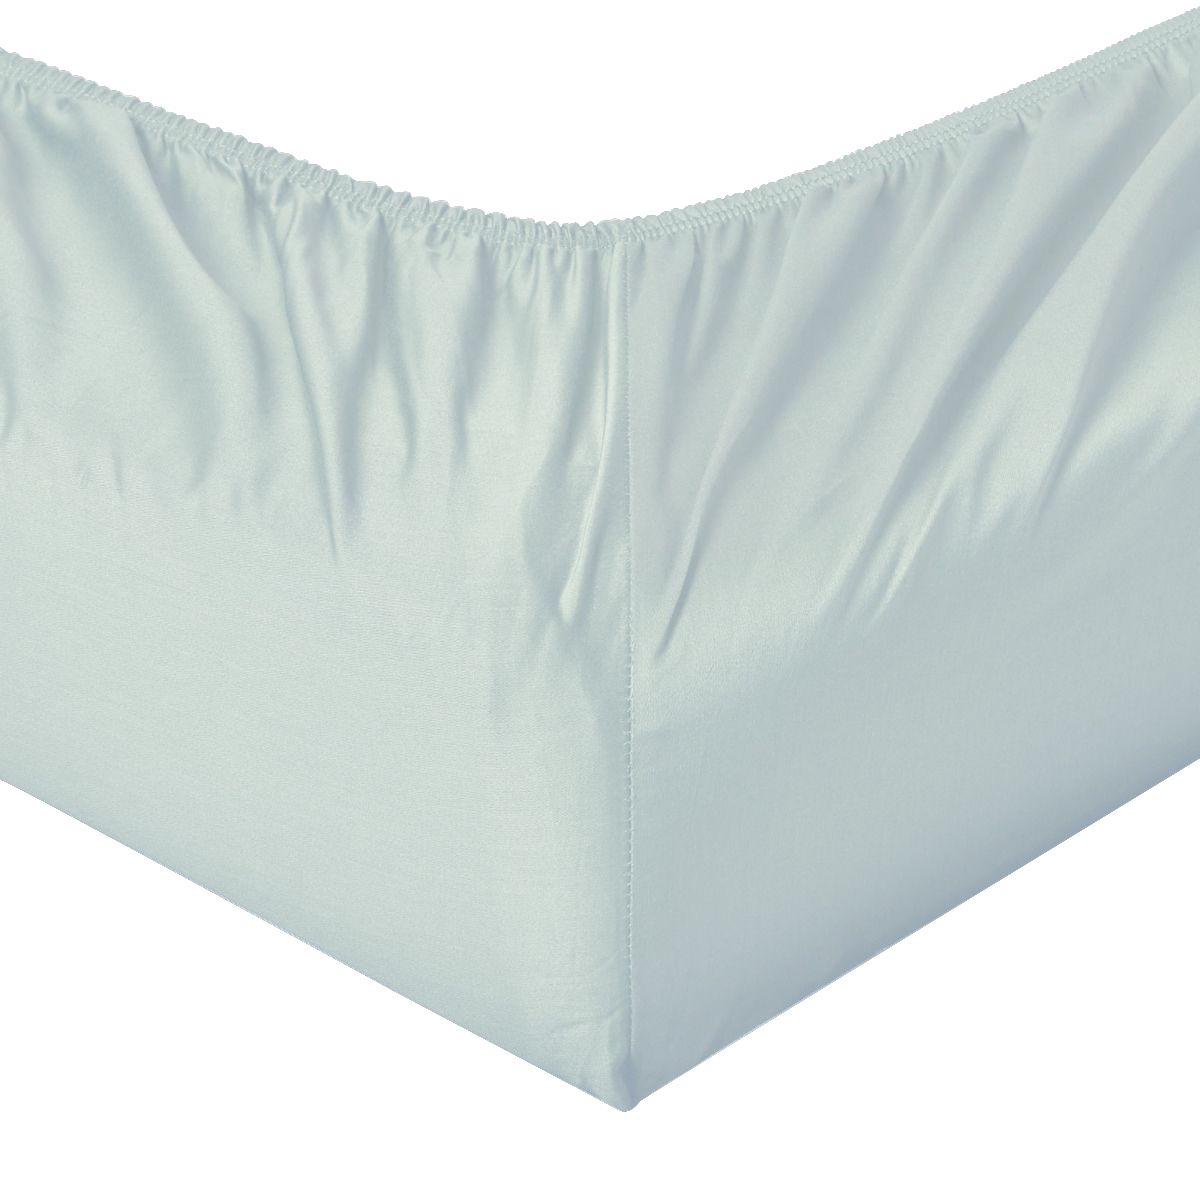 terry-fitted-sheet